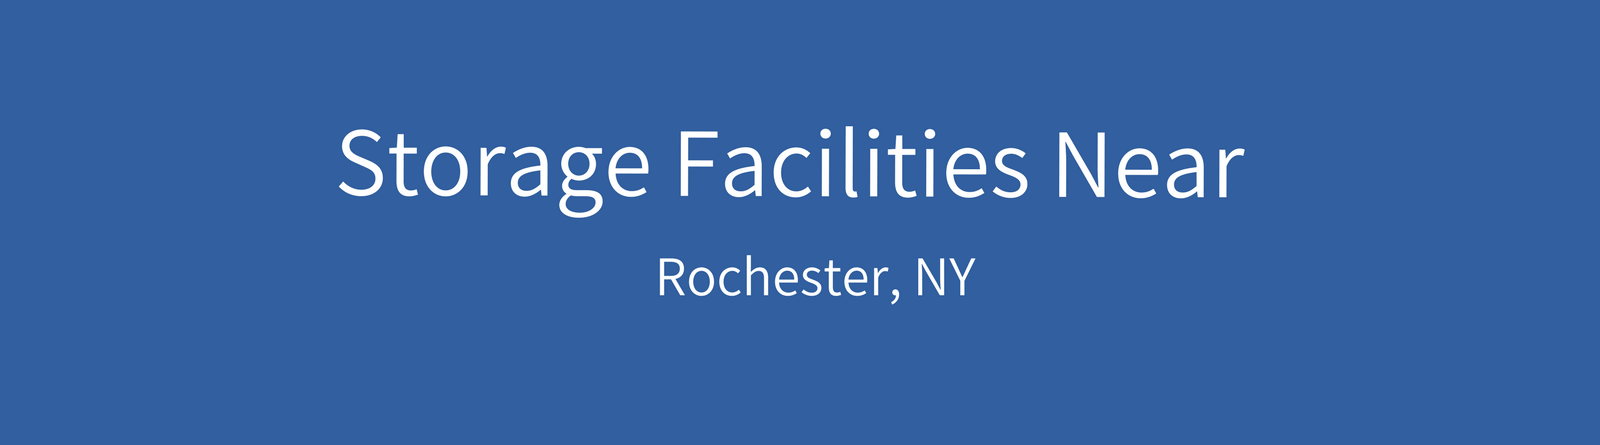 Storage Facilities Near Rochester, NY